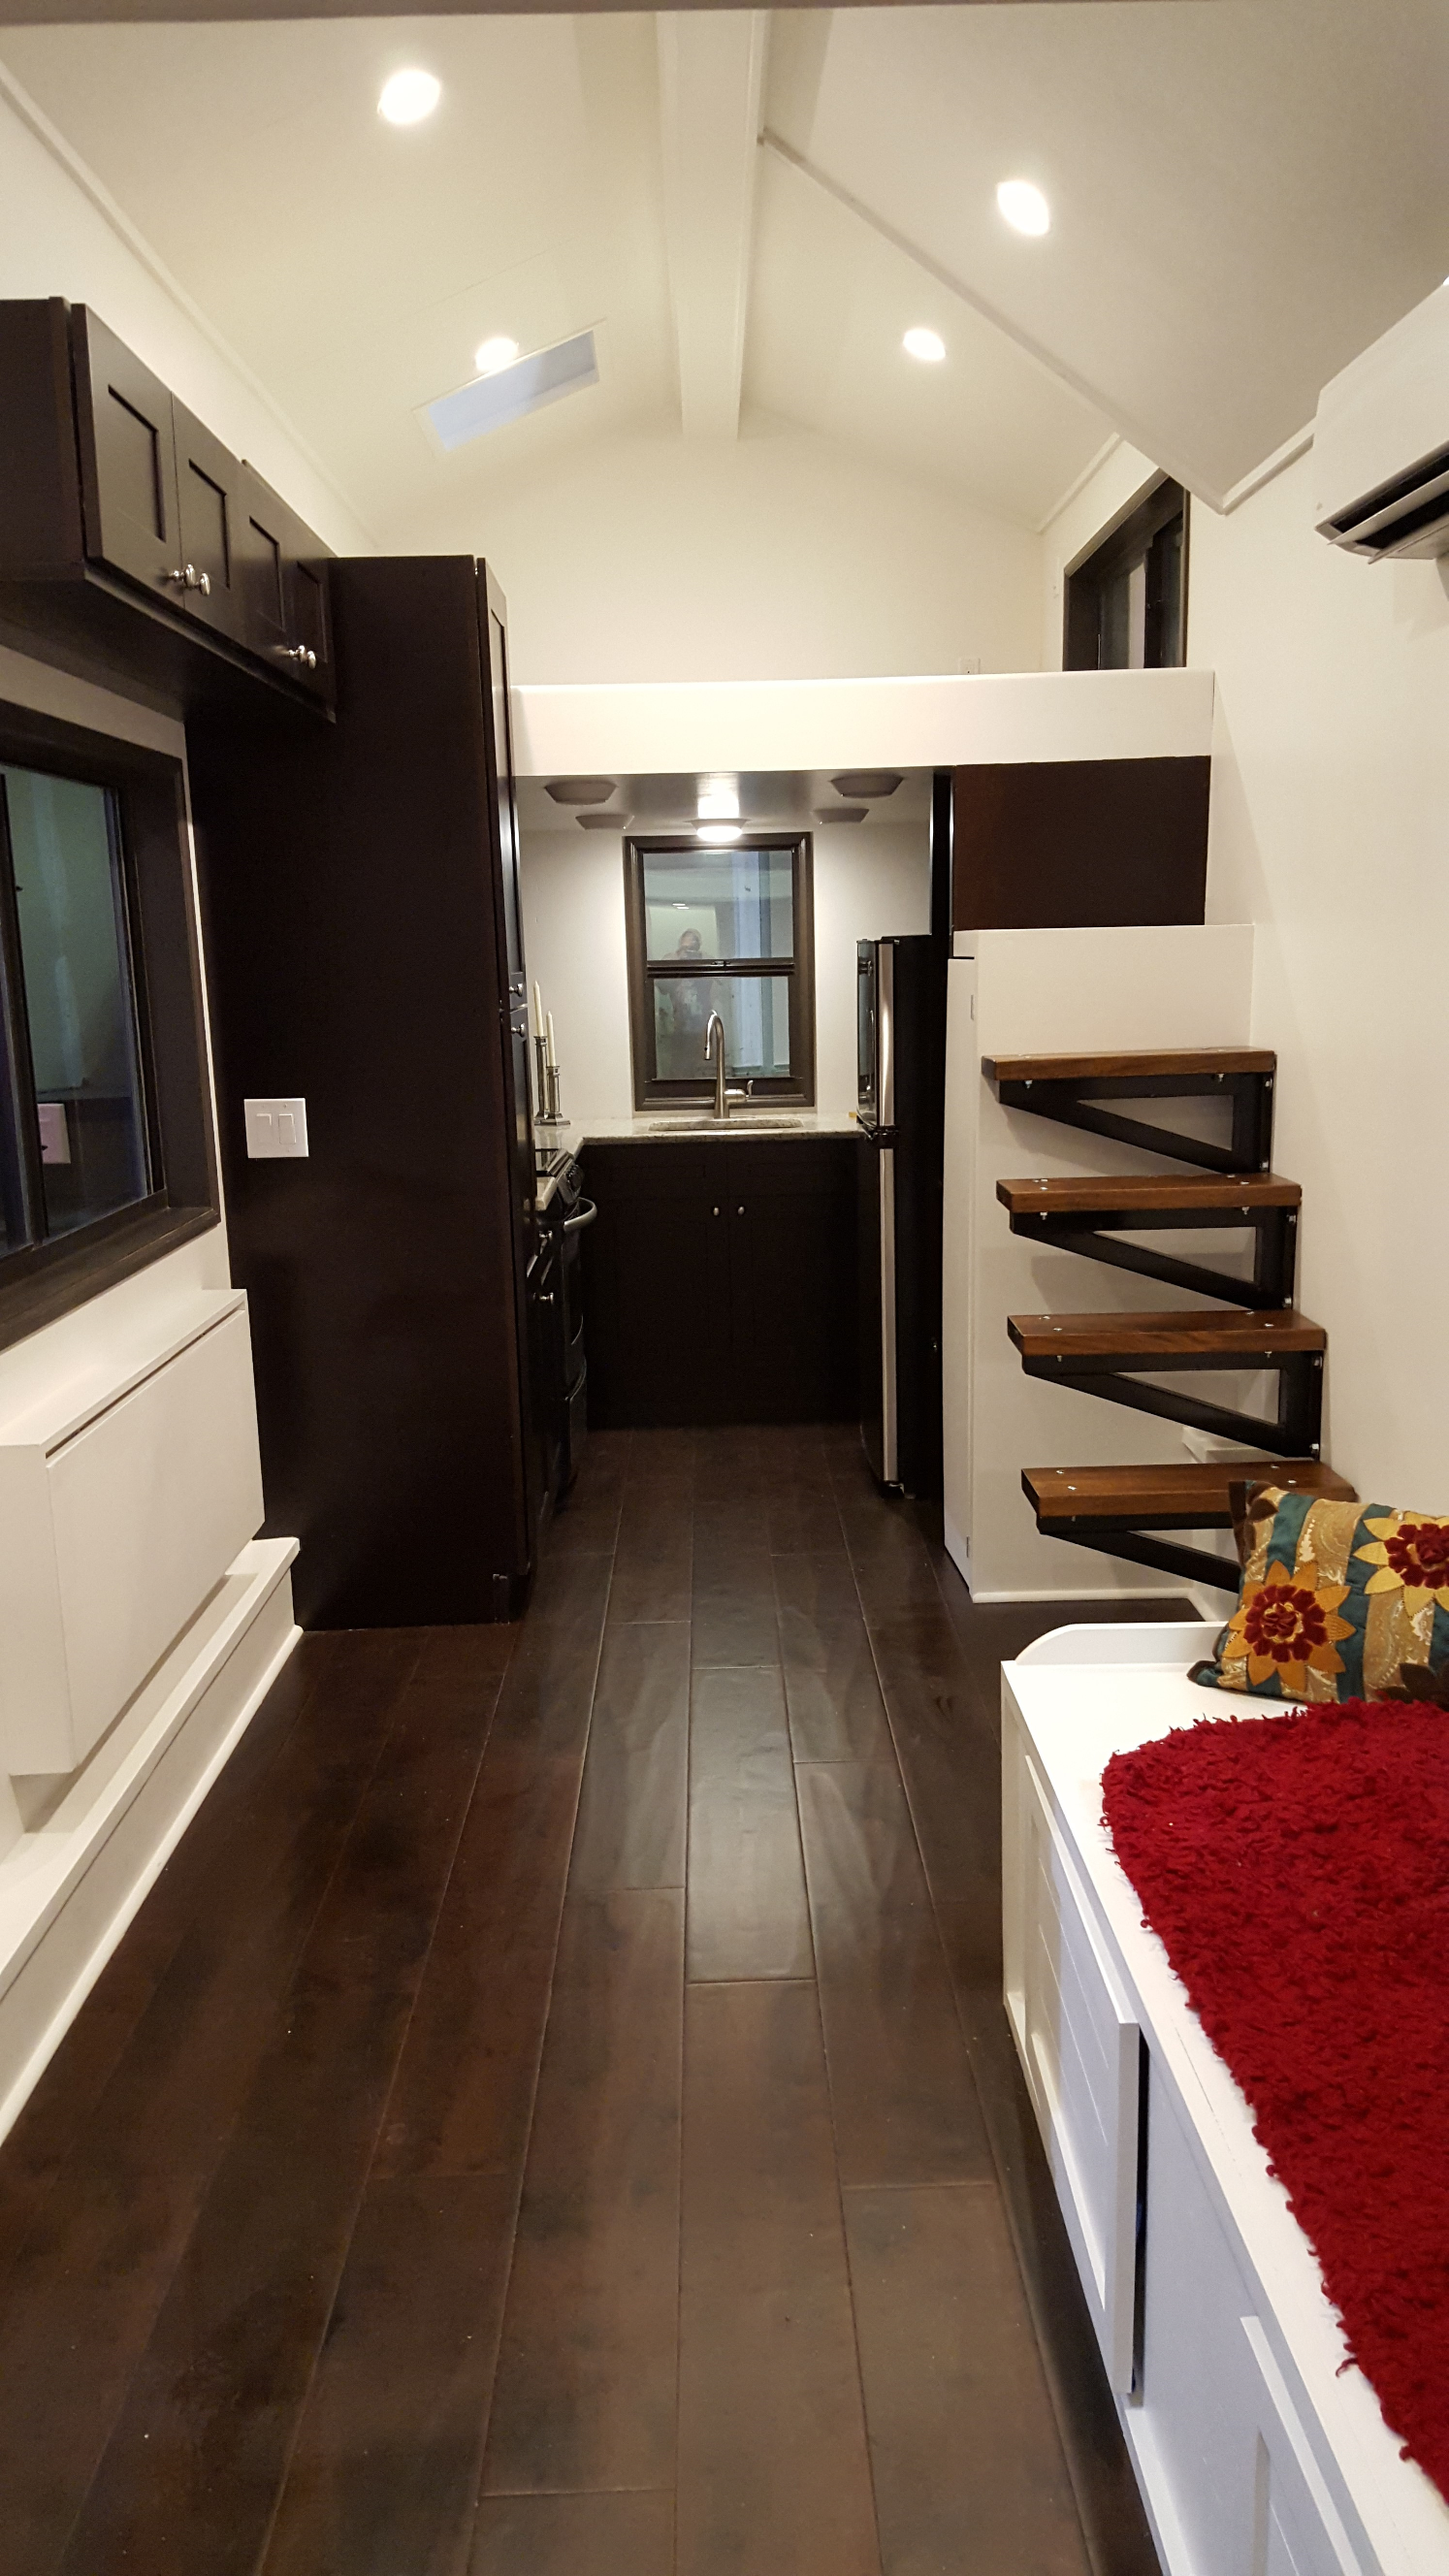 Cornerstone Tiny Homes, Florida, 28 foot, tiny house on wheels, THOW The Fontana.